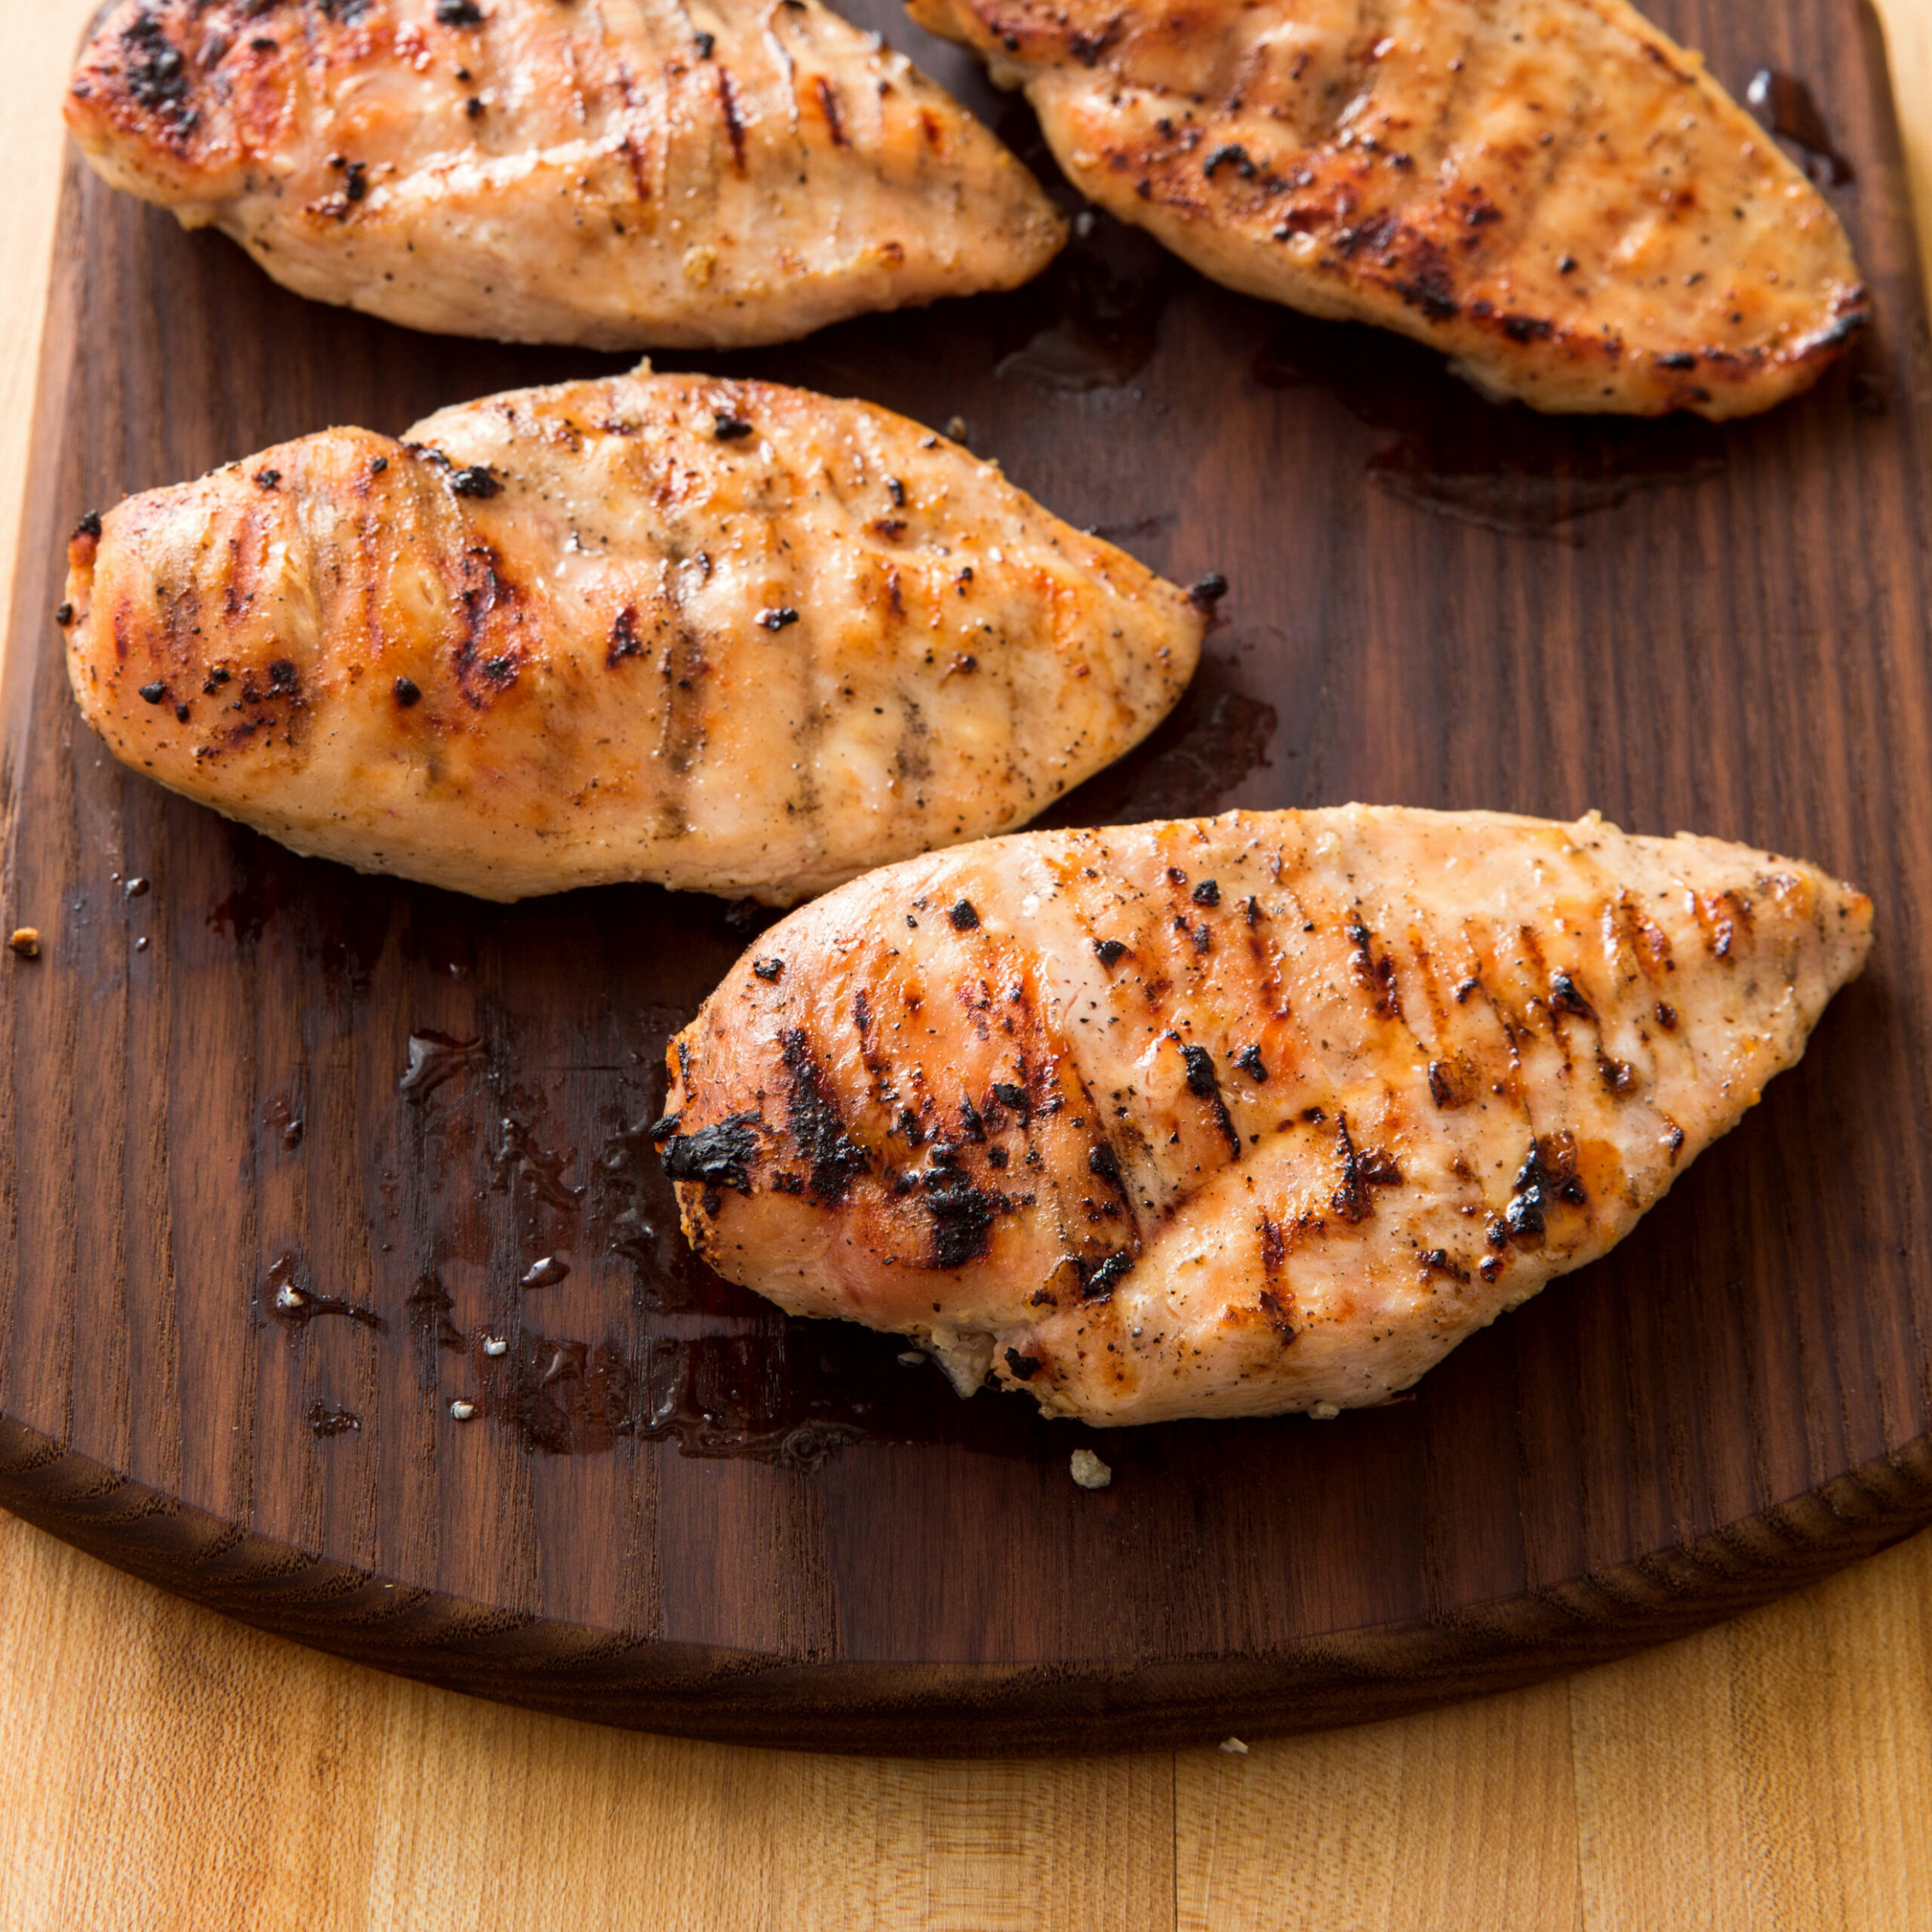 Grilled Boneless, Skinless Chicken Breasts - Recipes Skinless Boneless Chicken Breast